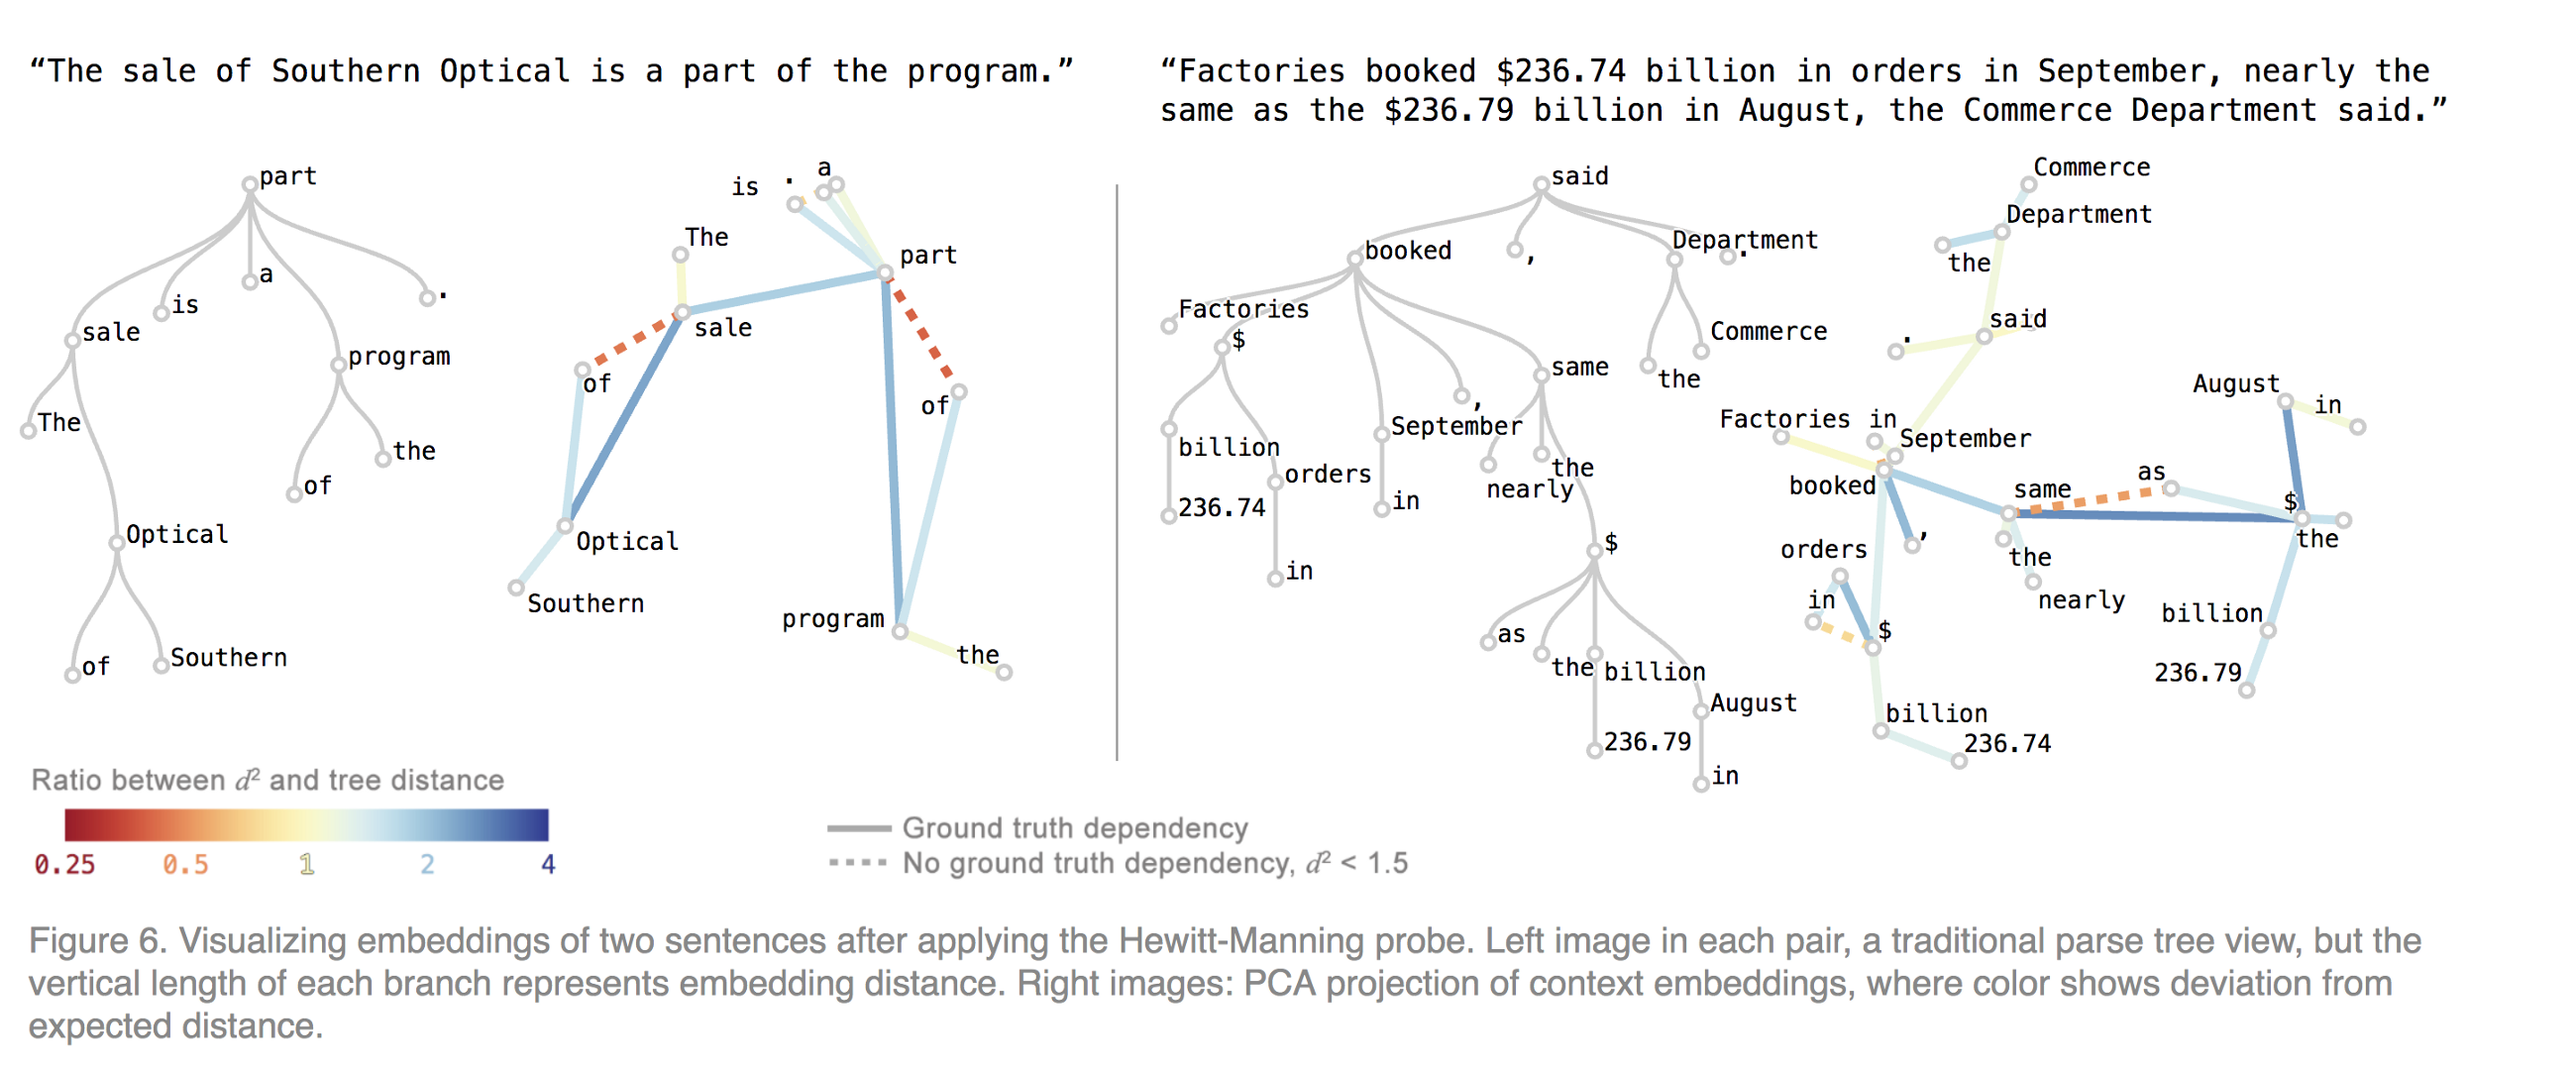 FROM Pre-trained Word Embeddings TO Pre-trained Language